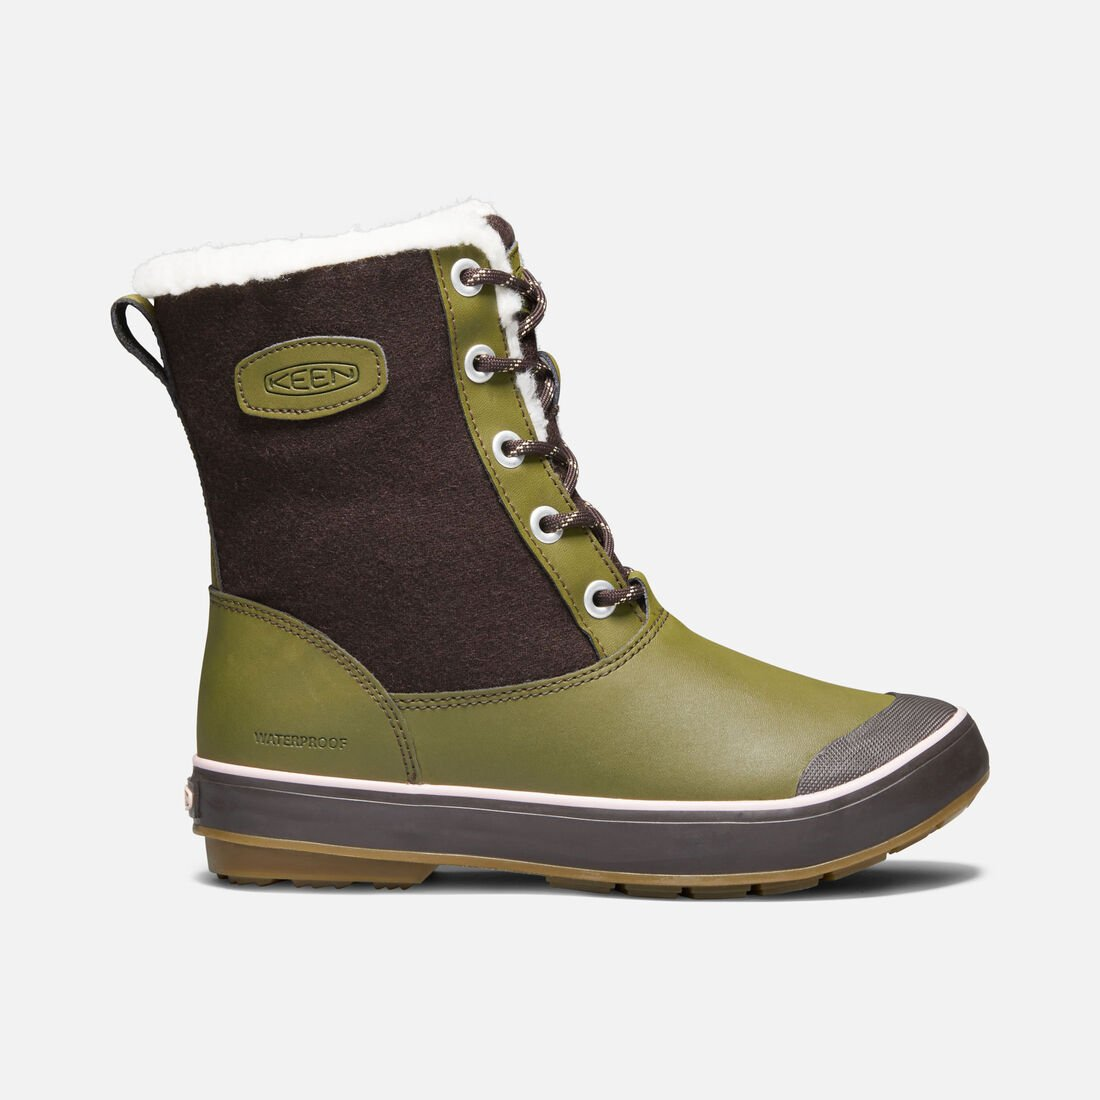 59a7b7d0ce0 WOMEN'S ELSA WINTER BOOTS | KEEN Footwear